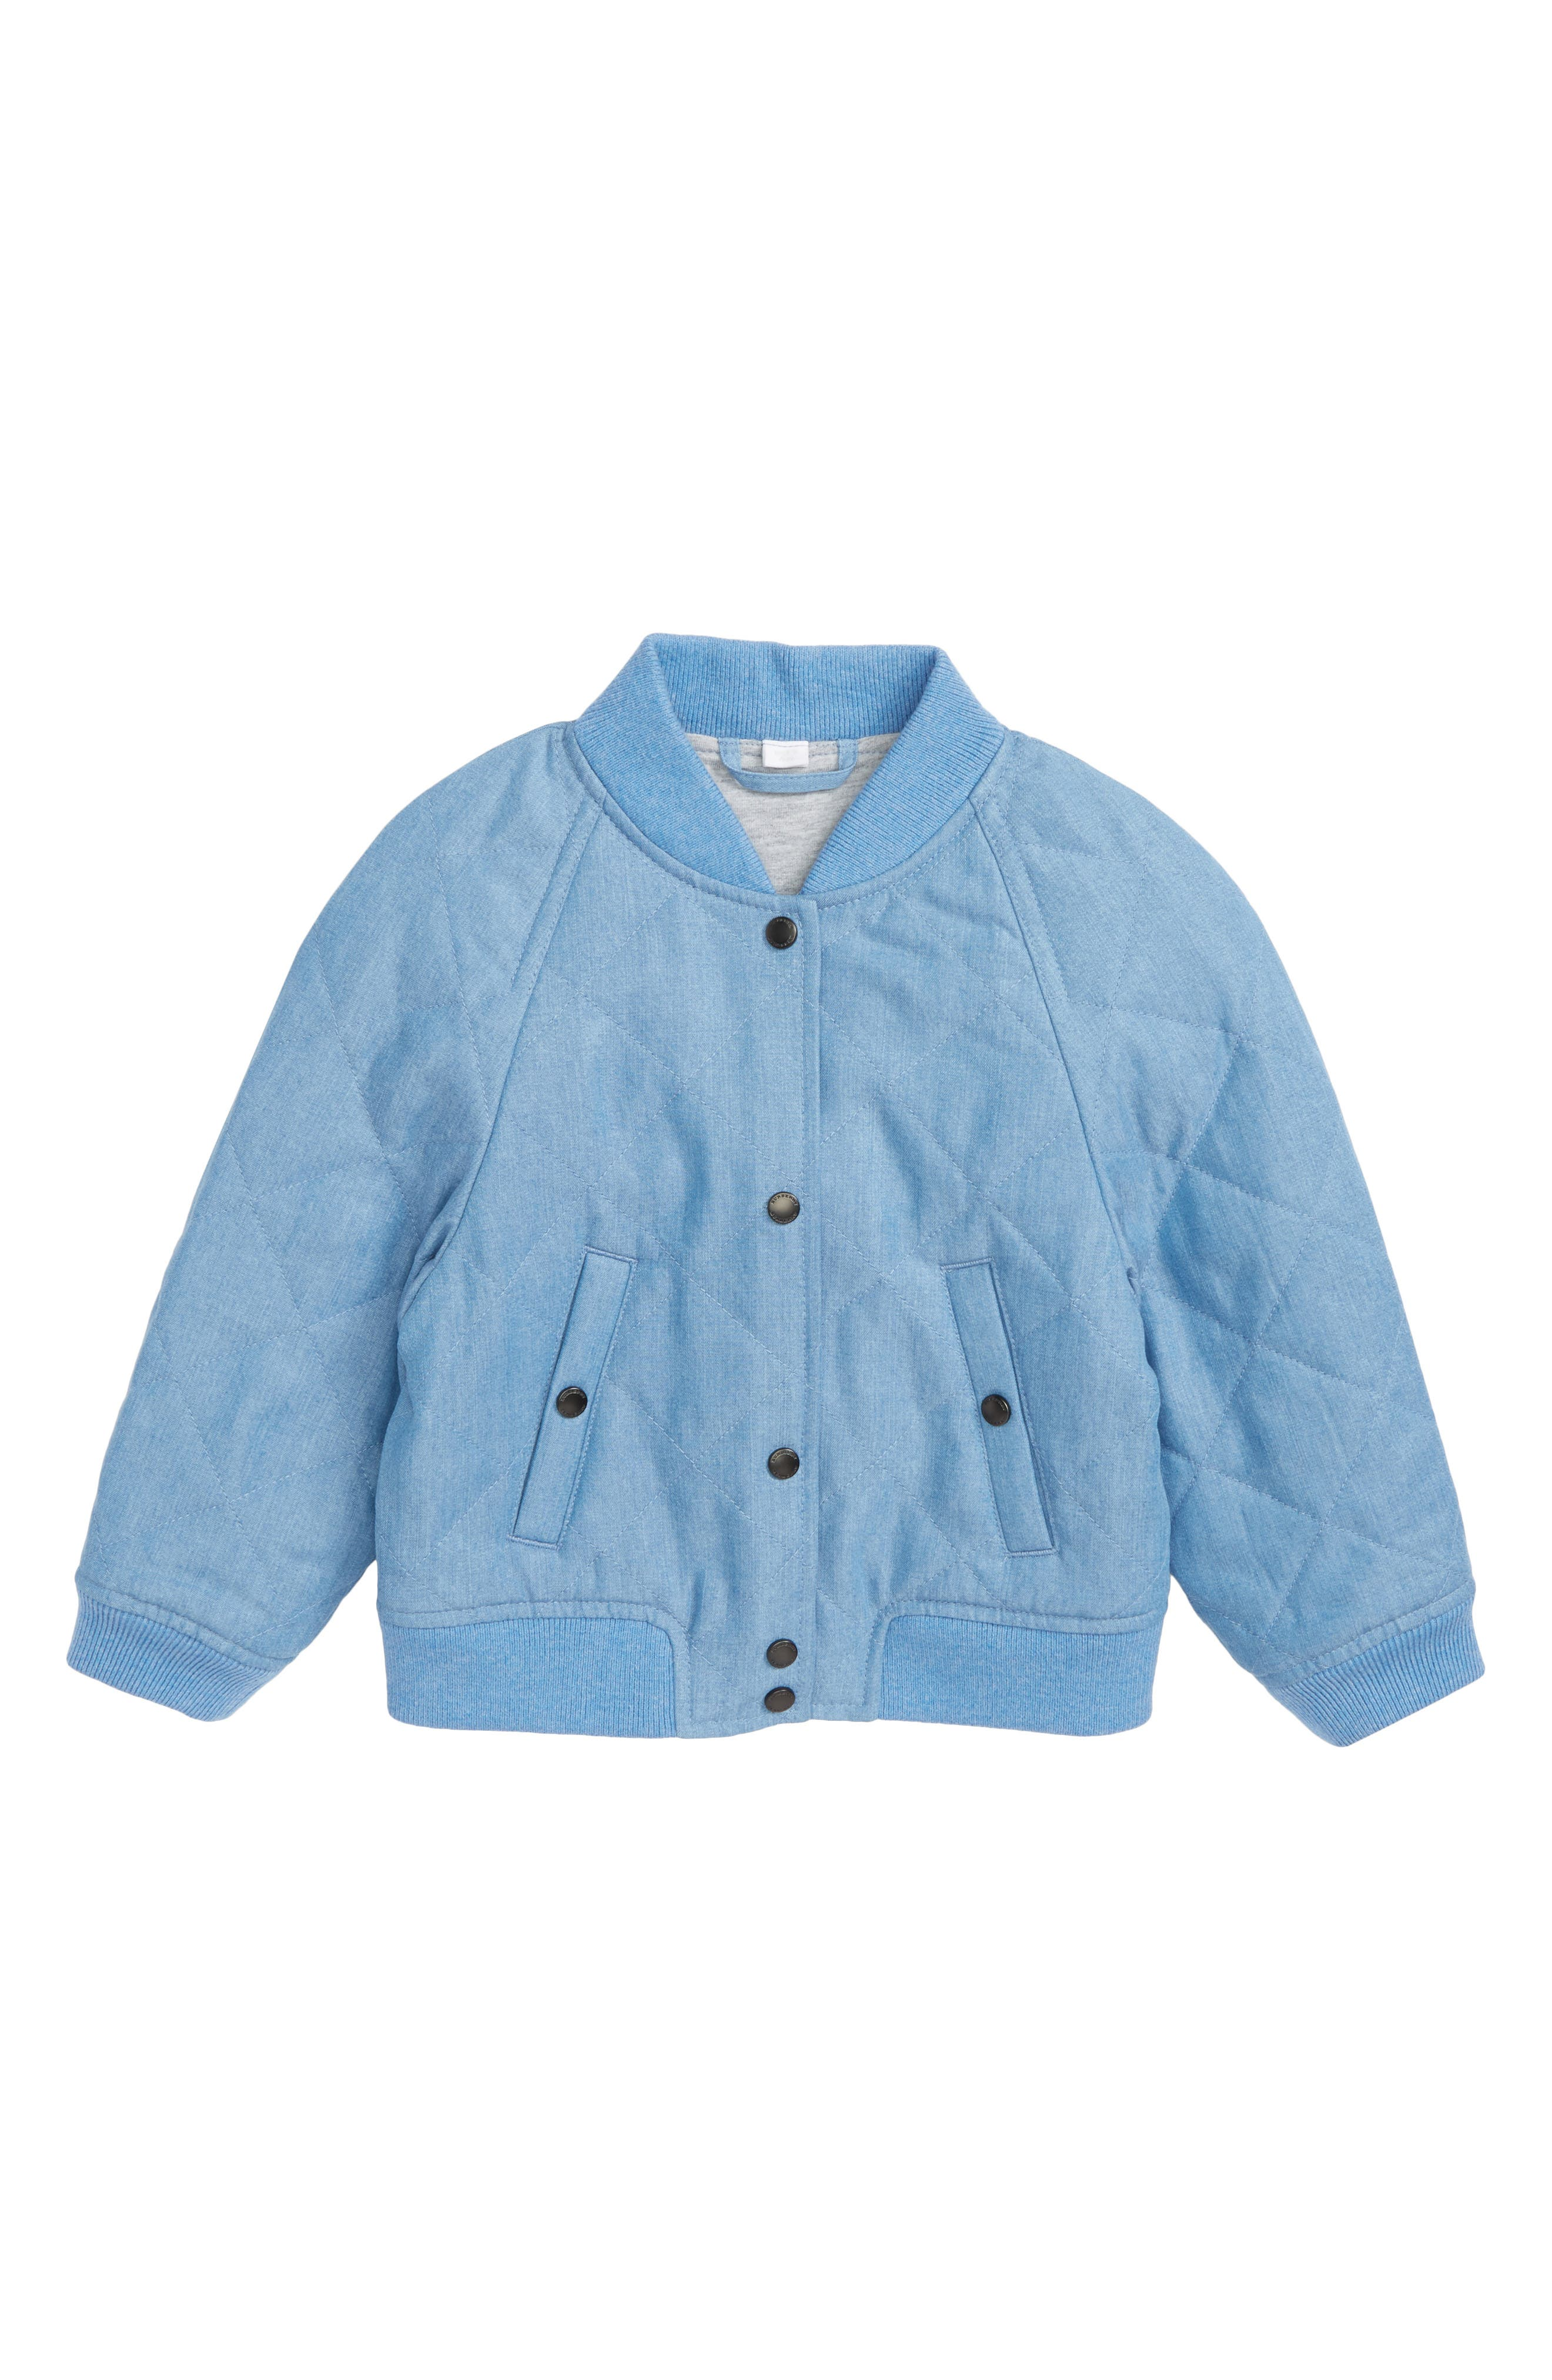 Joelle Quilted Denim Bomber Jacket,                             Main thumbnail 1, color,                             409